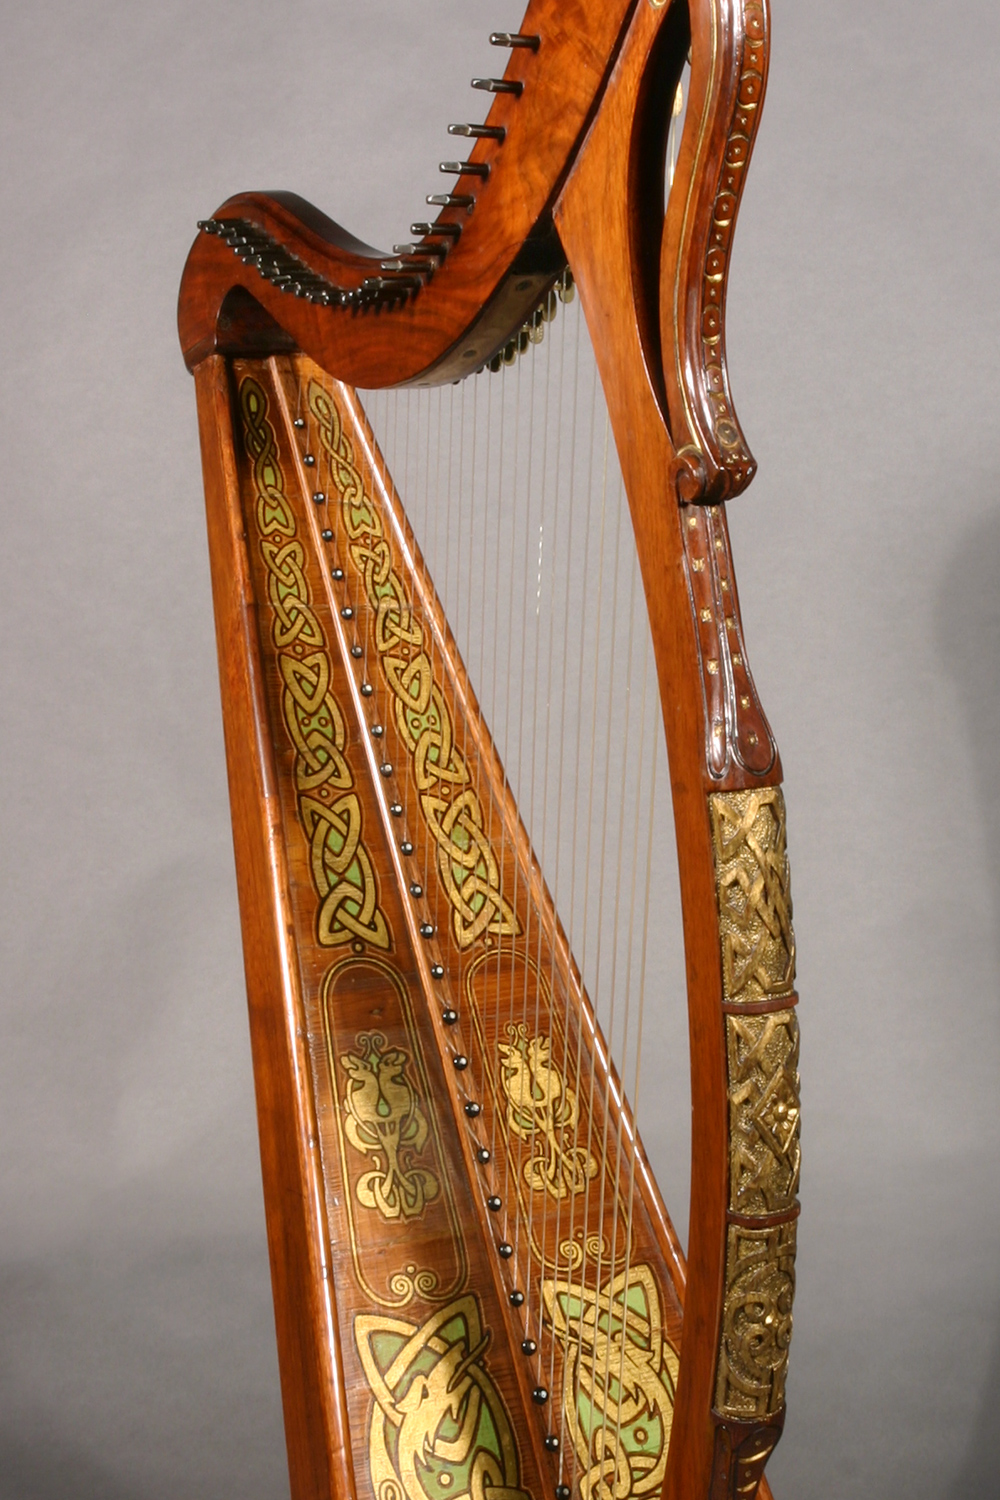 James McFall harp with with gilt, green, and black polychrome designs